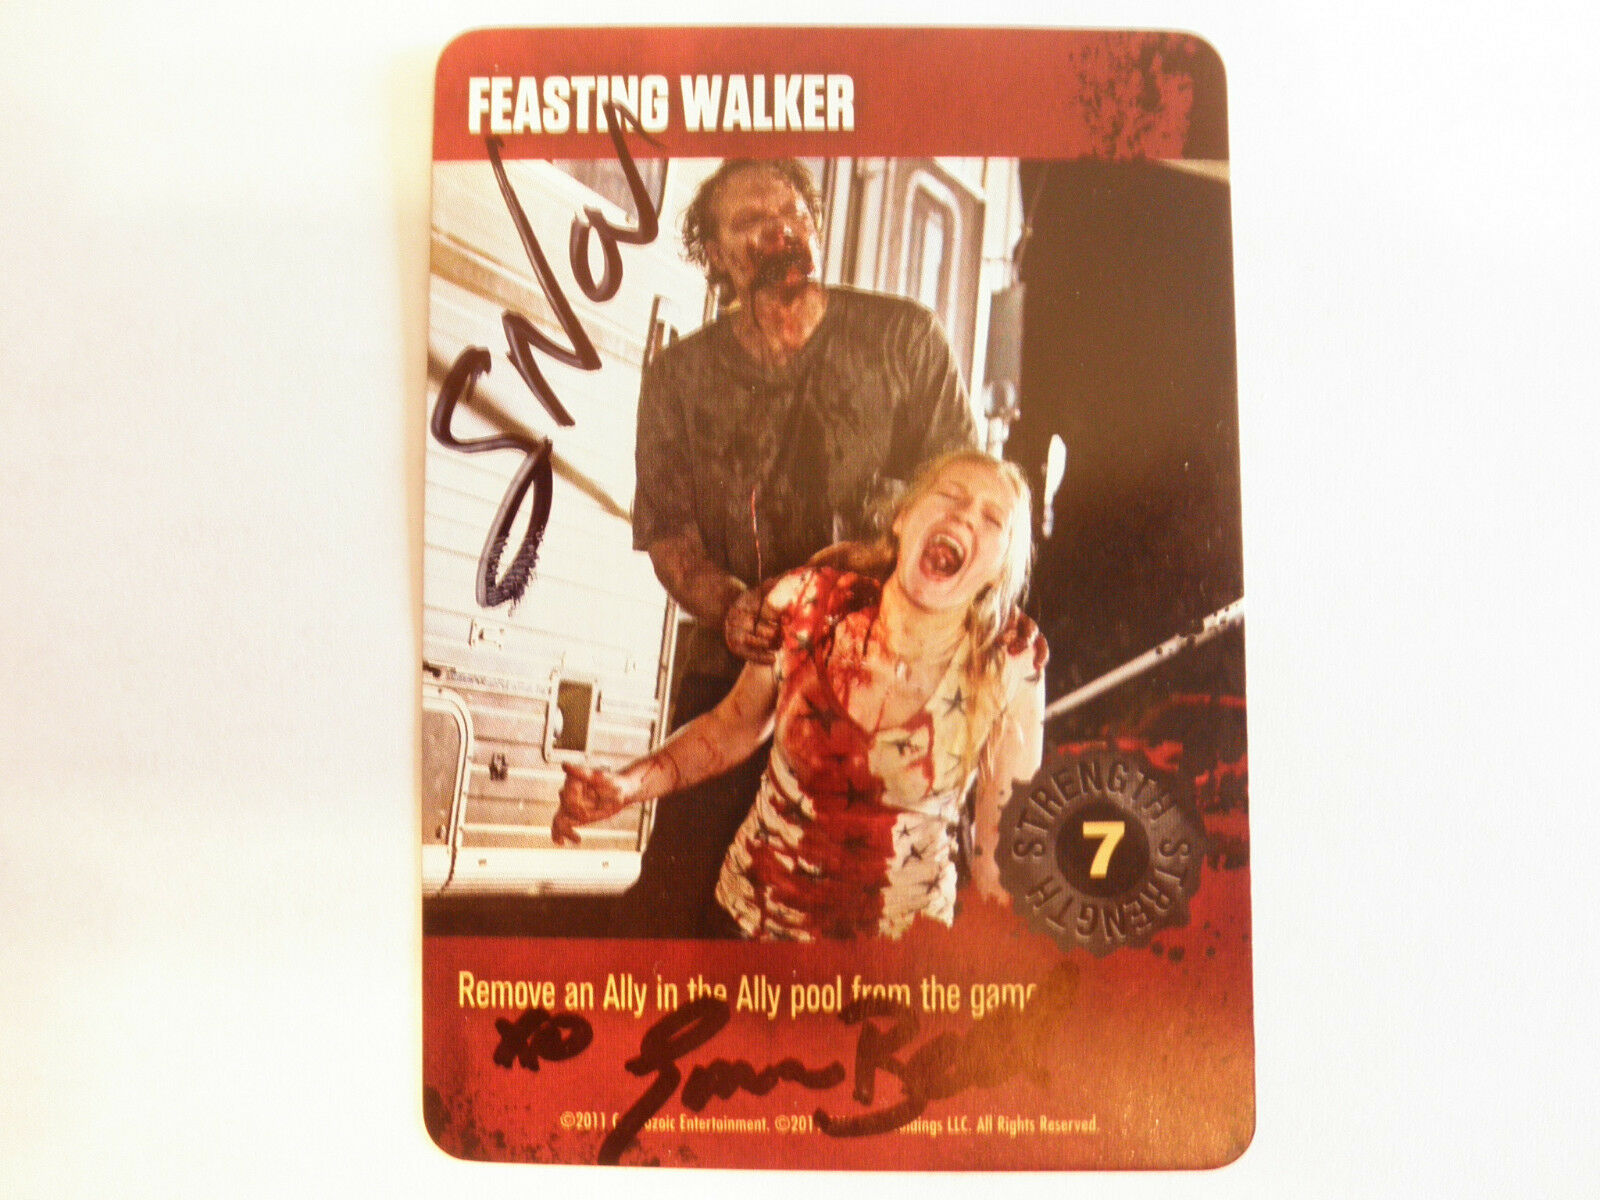 Autographed Walking Dead card - Feasting Walker (Greg Nicotero and Emma Bell)